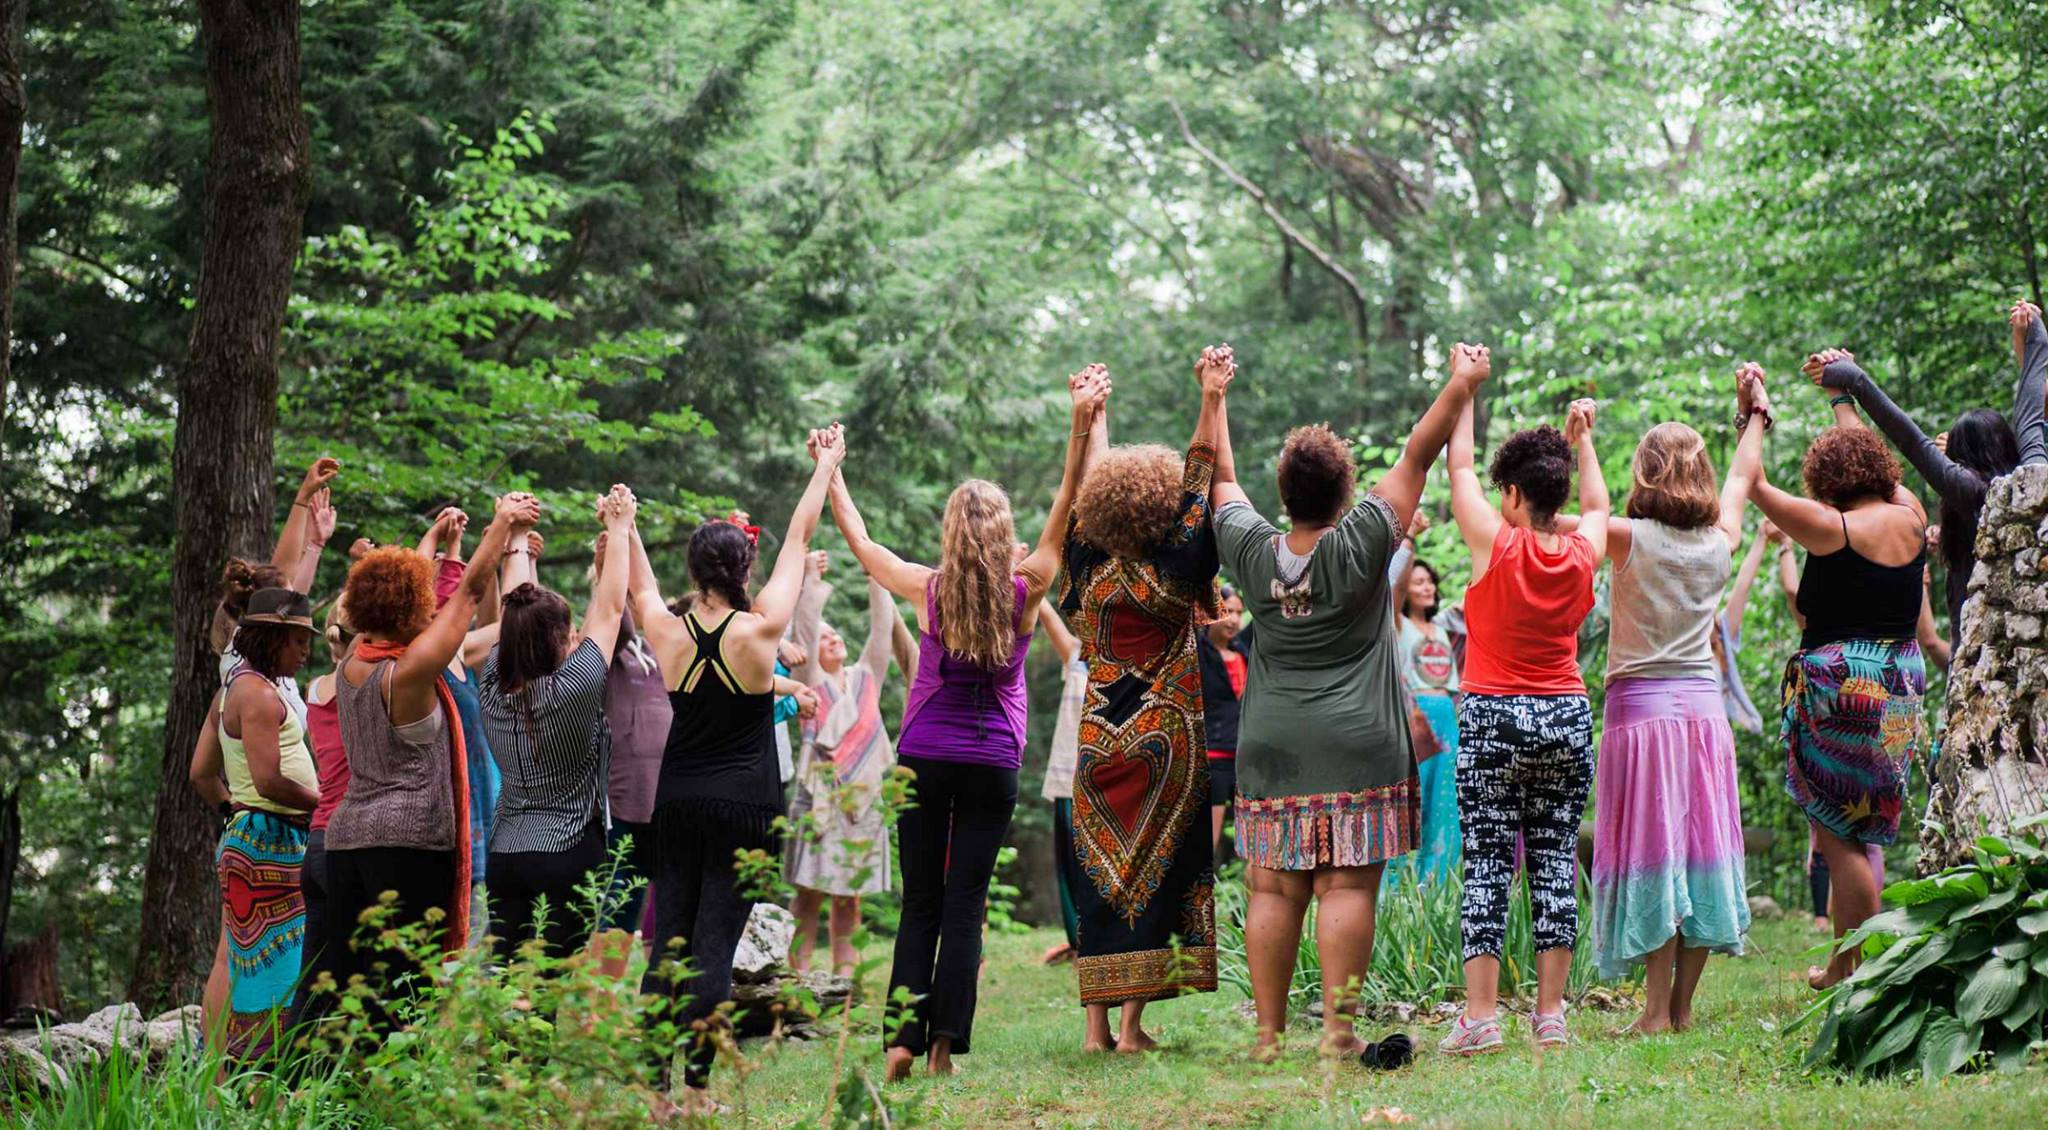 Photo credit: the Wild Woman Fest